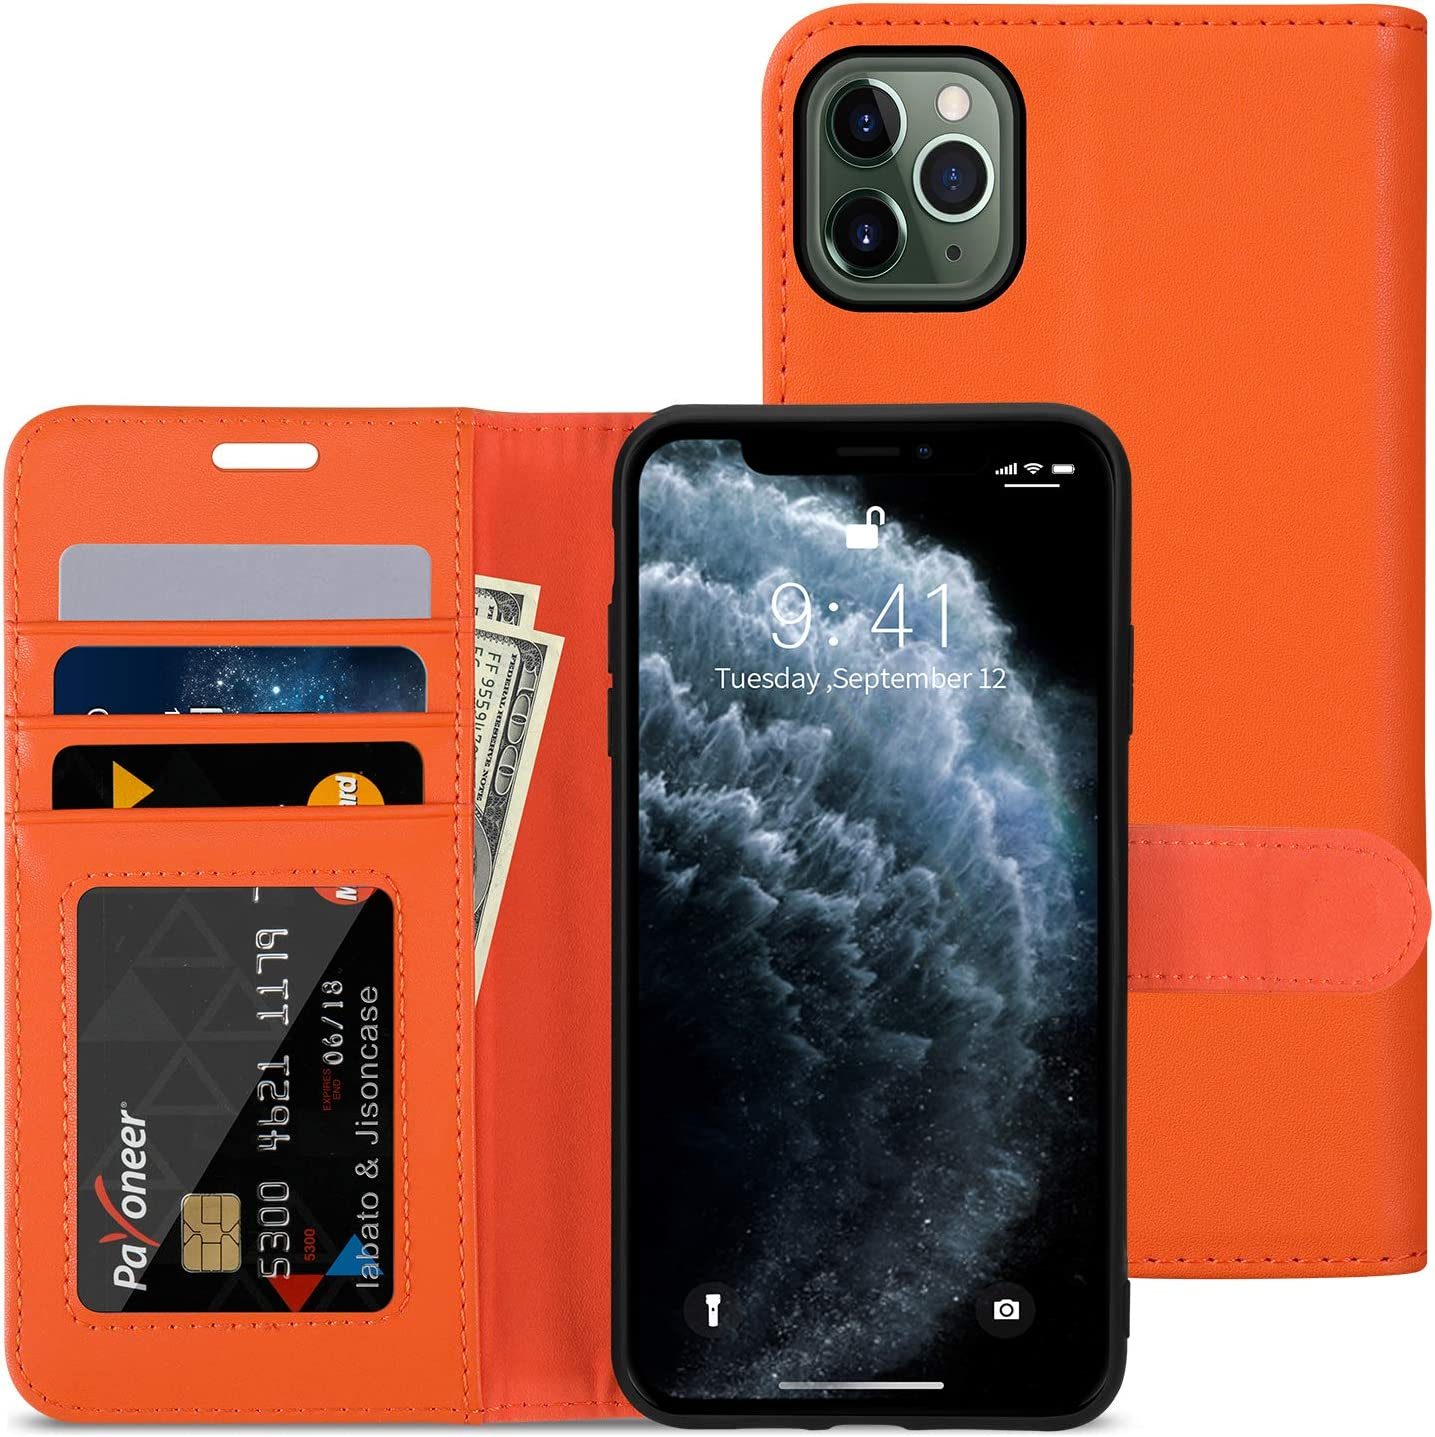 labato iPhone 11 Pro Max Wallet Case, Leather iPhone 11 Pro Max Case with Credit Card Holder Slot Magnetic Closure Shockproof Flip Stand Case Cover for Apple iPhone 11 Pro Max 6.5 inch Orange